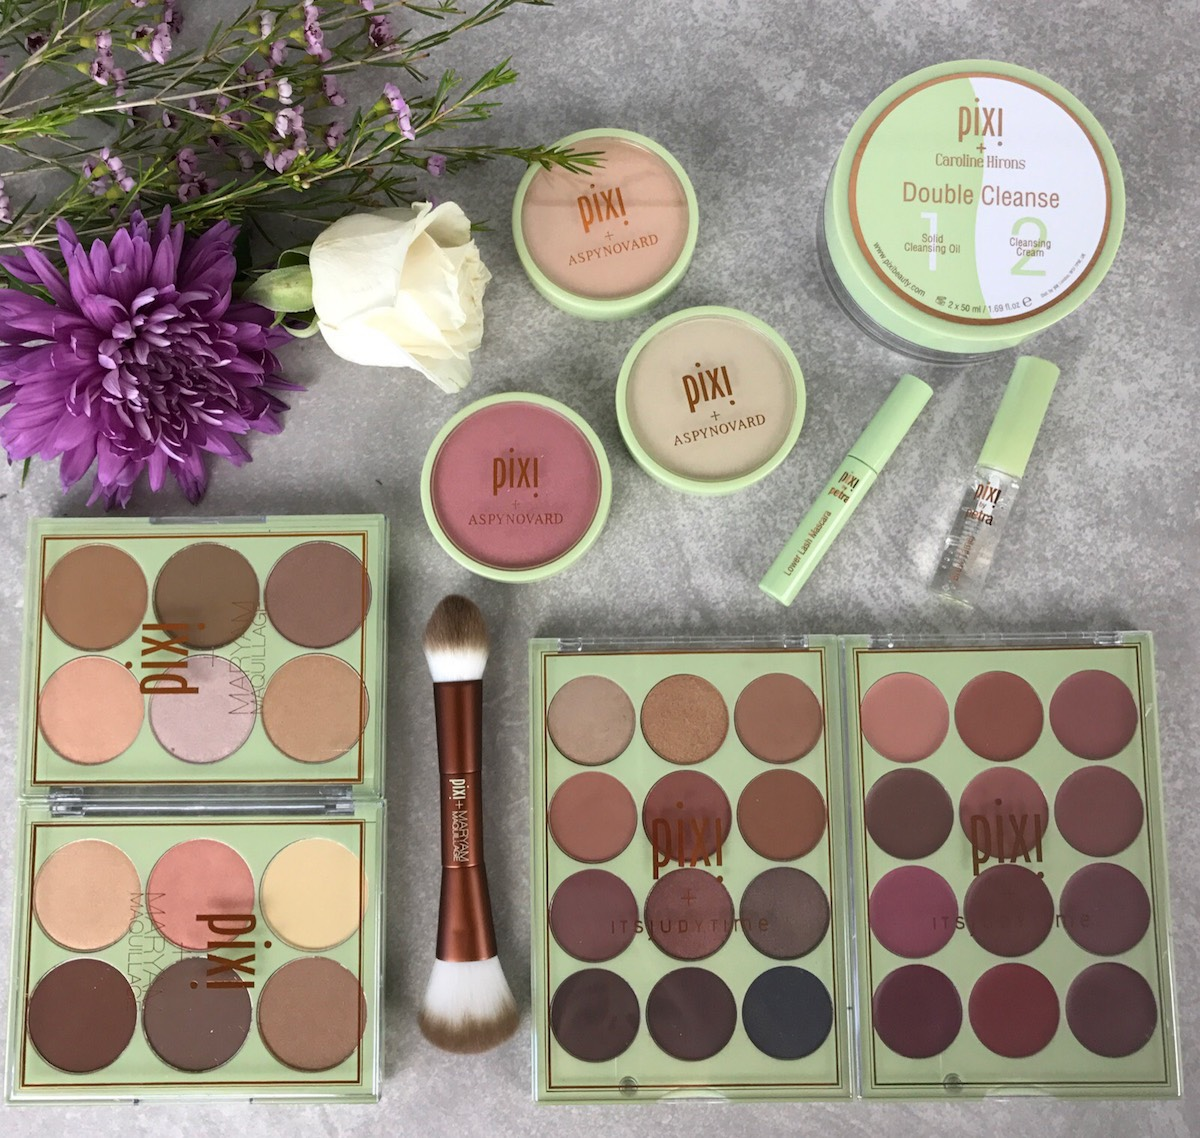 This is a flat lay of the gorgeous #PixiPretties collection from Pixi Beauty.